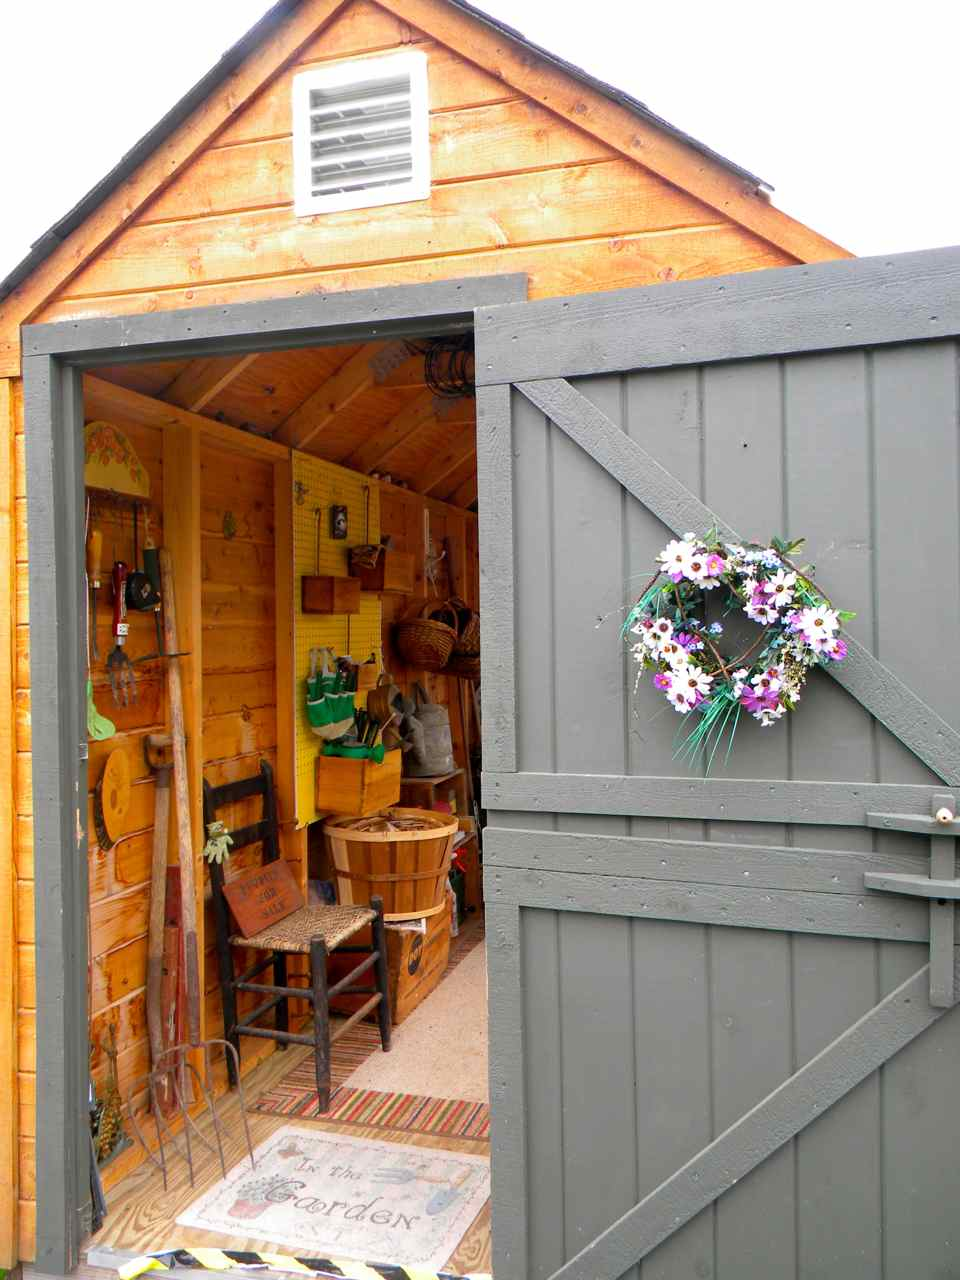 Pam 39 s english cottage garden the potting shed garden - Cottage garden shed pictures ...